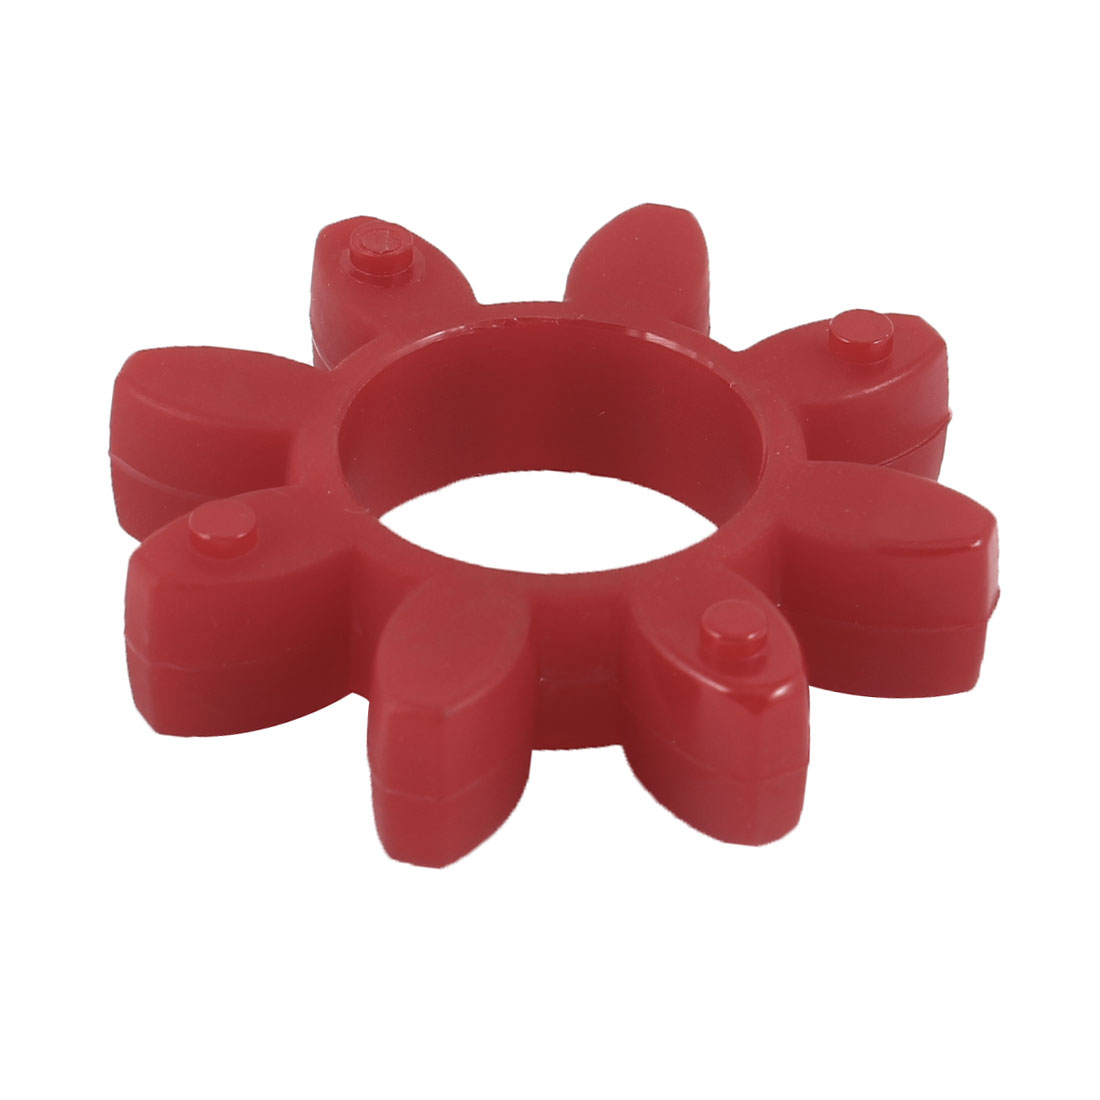 65mm x 16mm PU Coupling Shaft Center Spider Plastic Coupler Damper